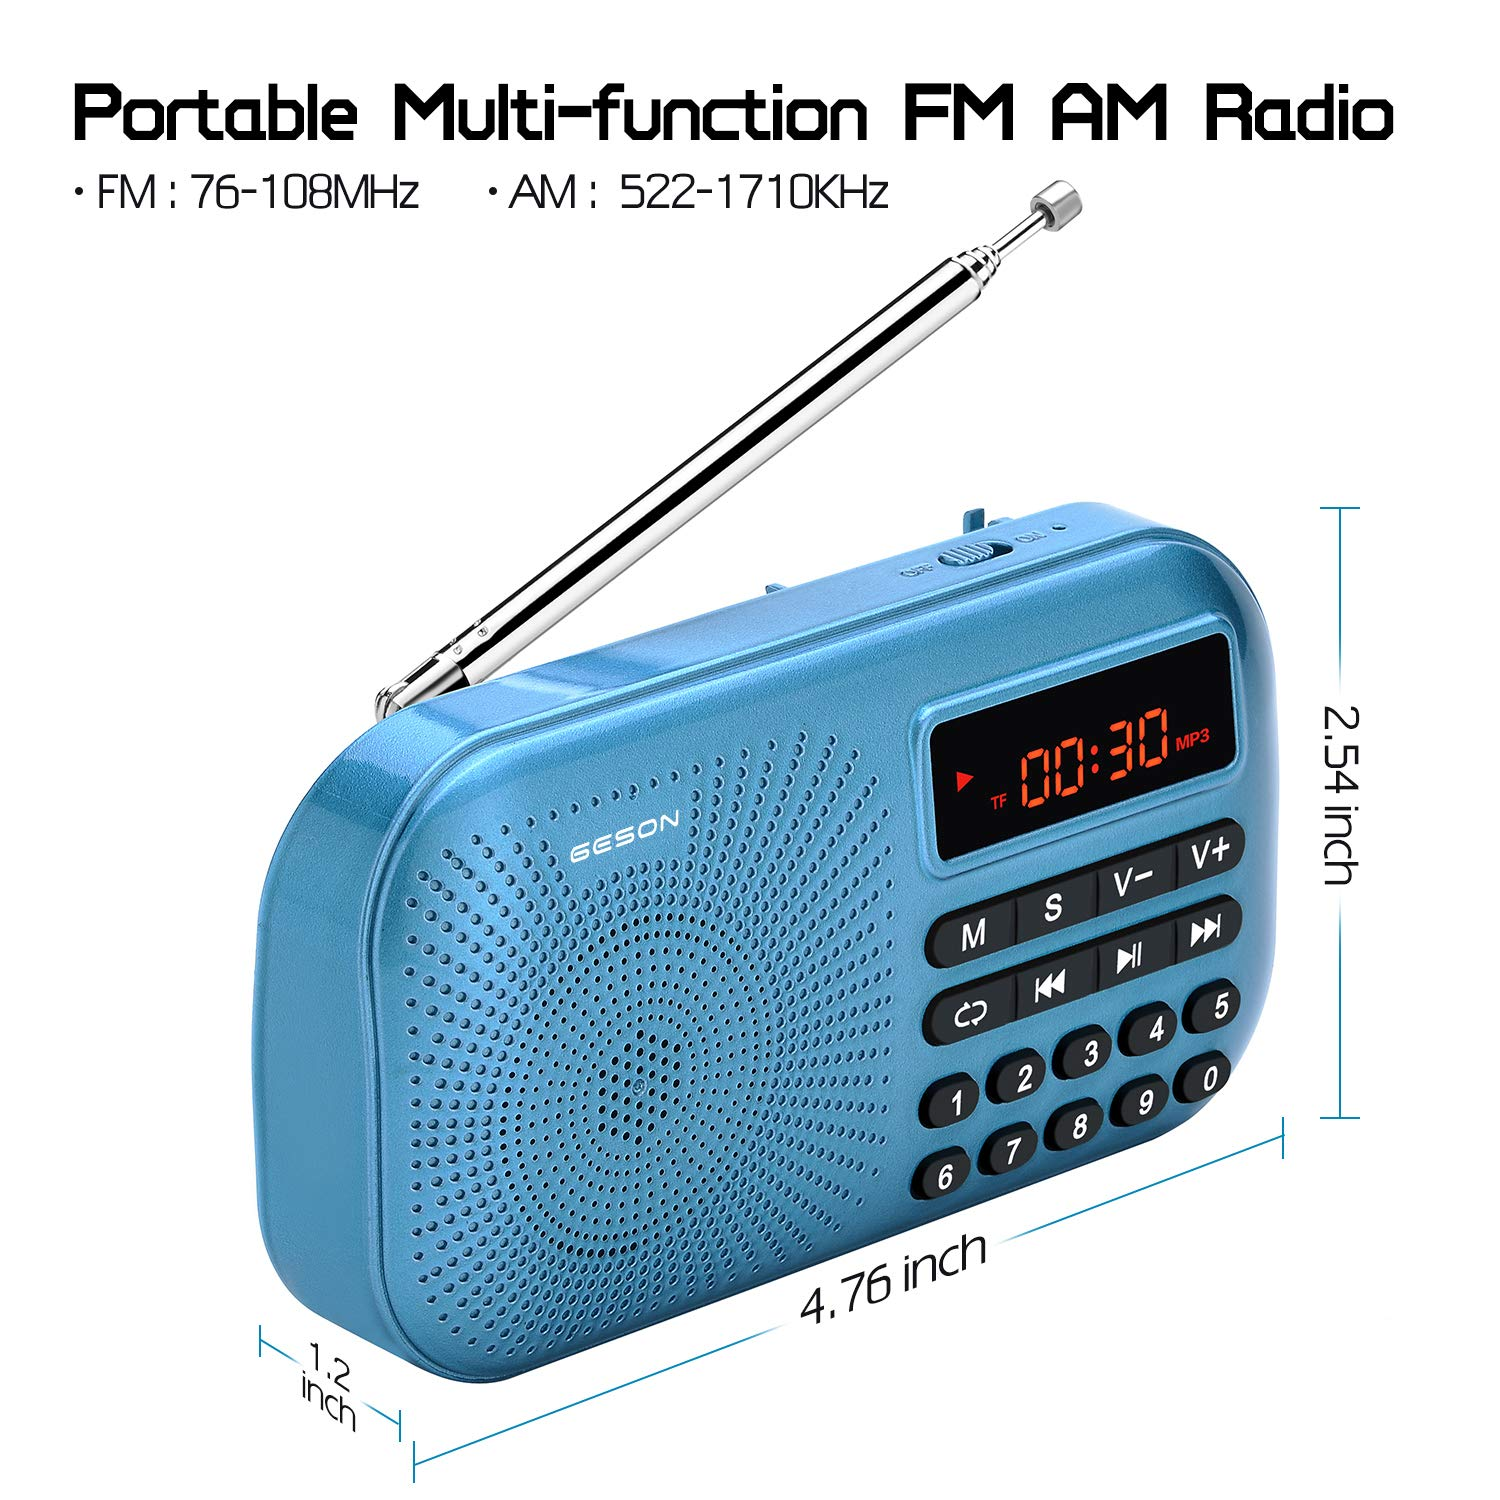 Portable AM FM Radio, Geson Mini Music Radio Player Support Micro SD Card/USB Disk with LED Screen Display (Blue) by Geson (Image #4)